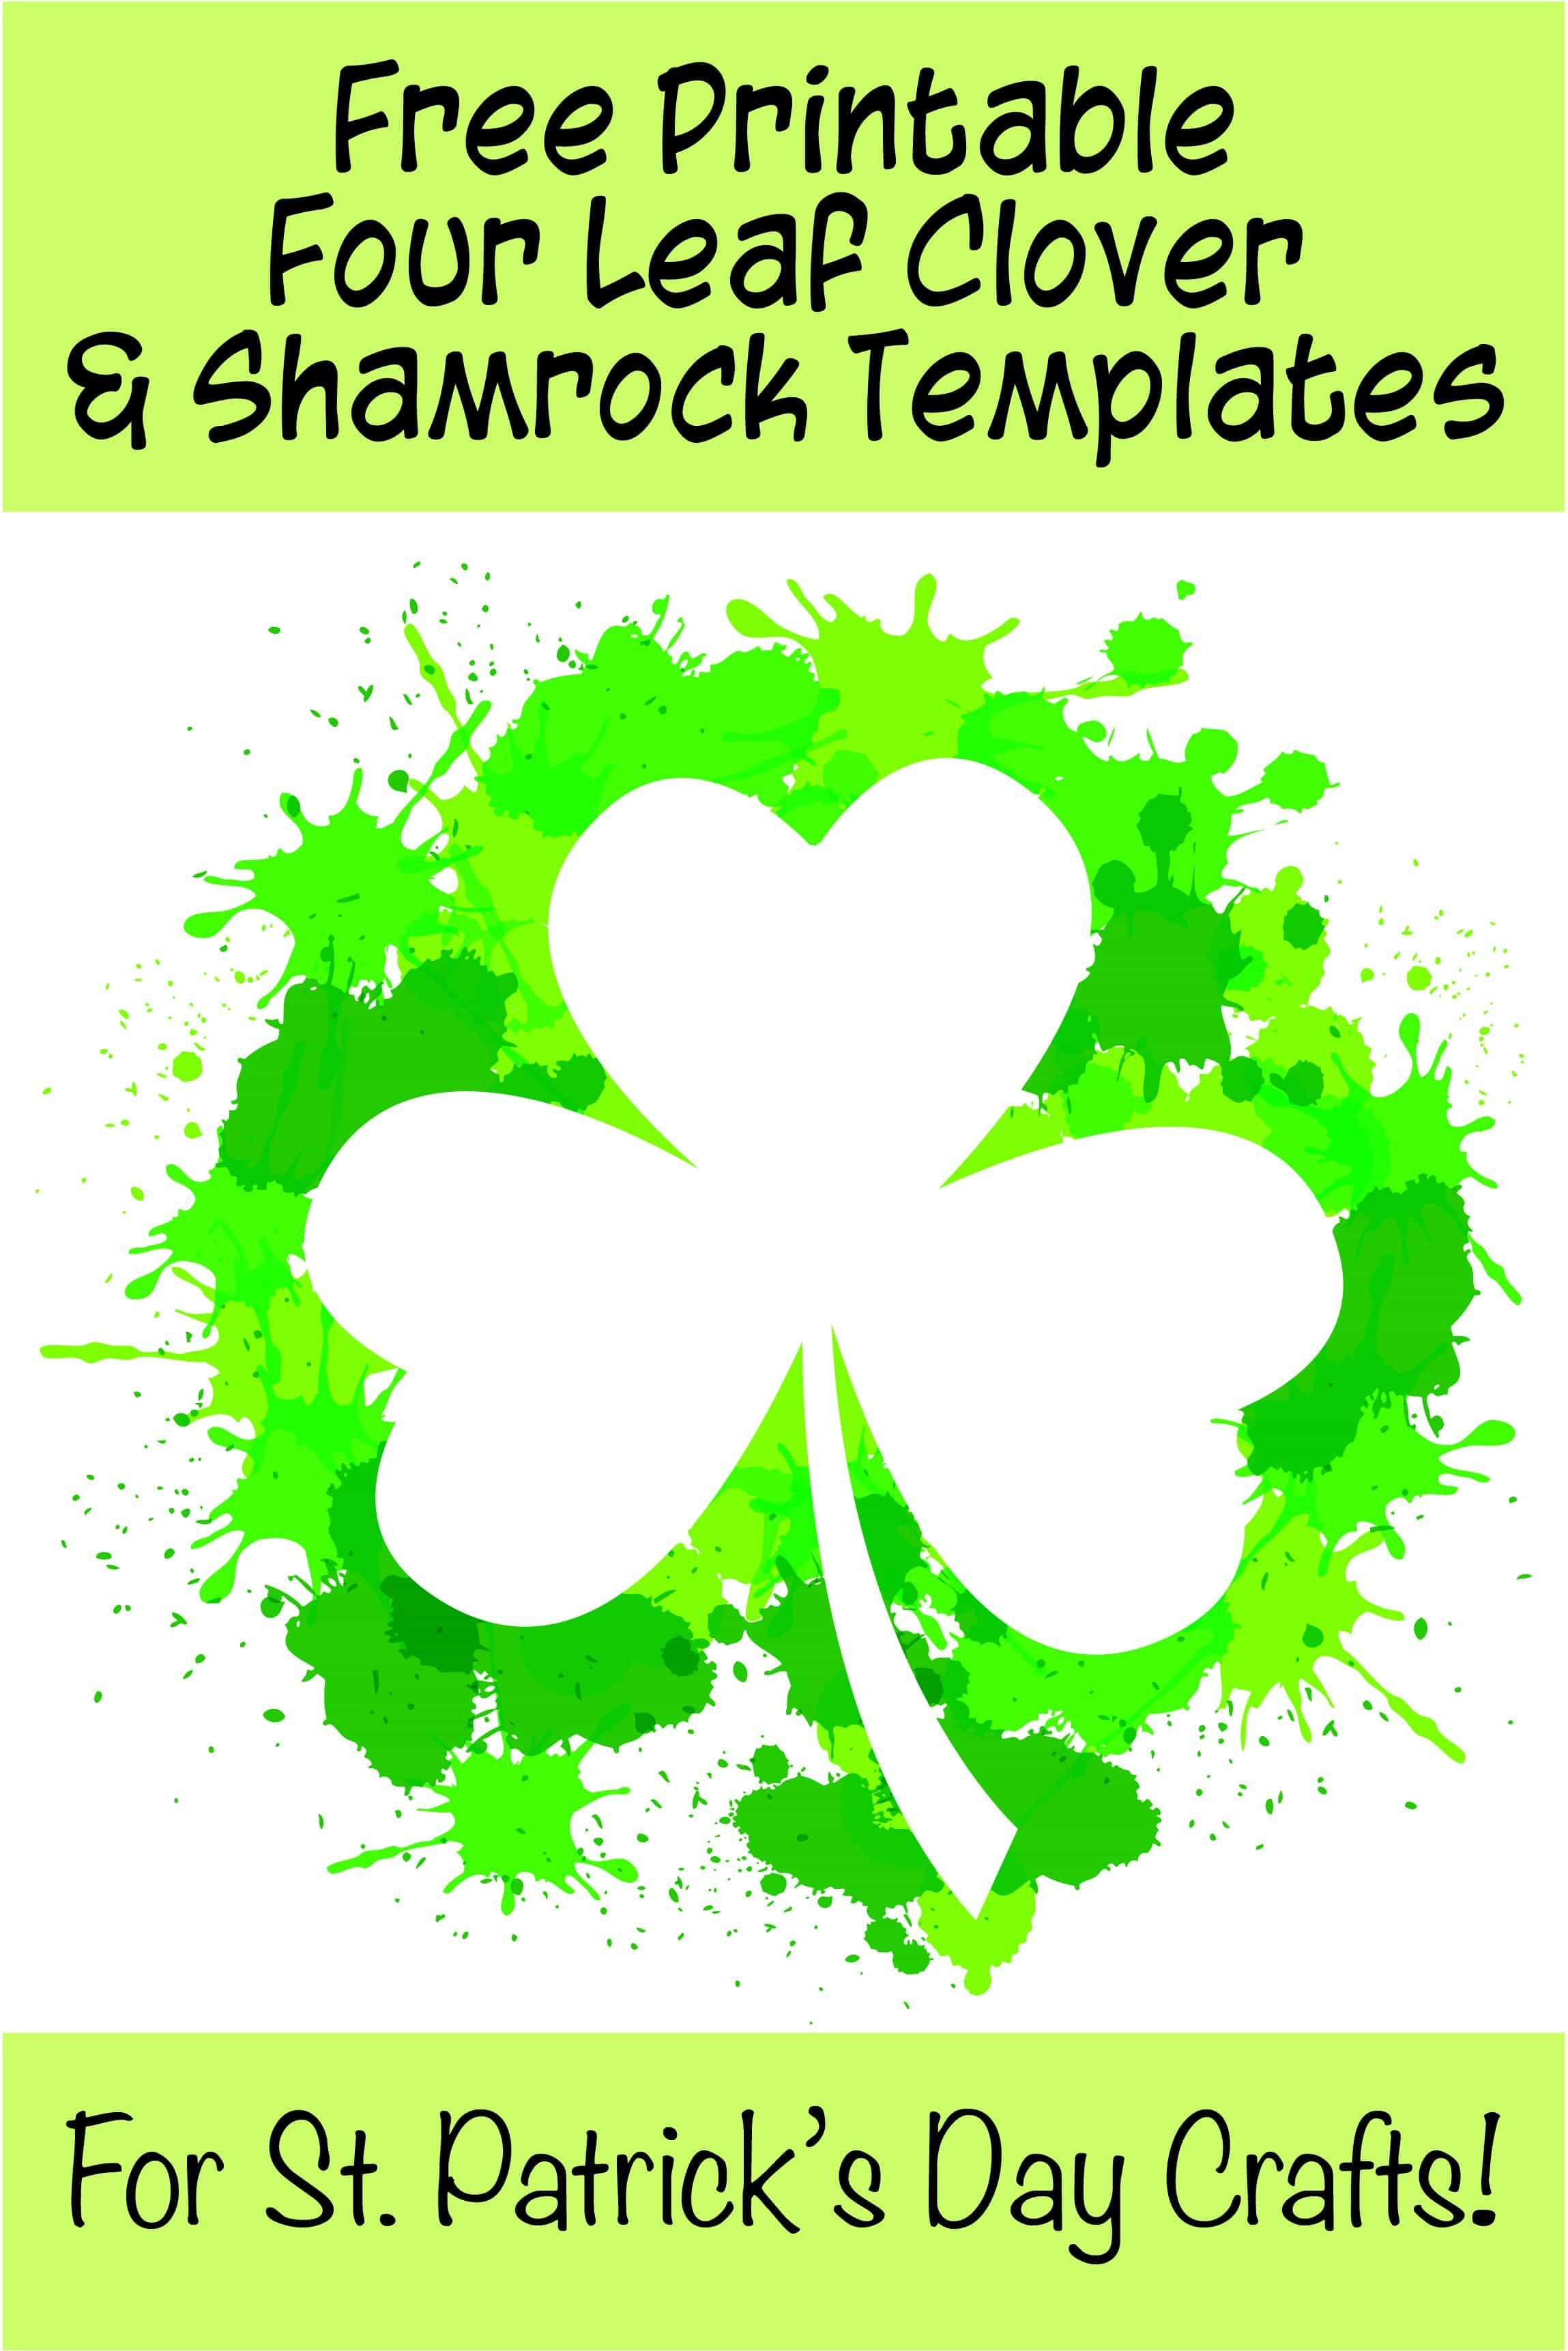 15 Free Printable Four Leaf Clover Shamrock Templates With